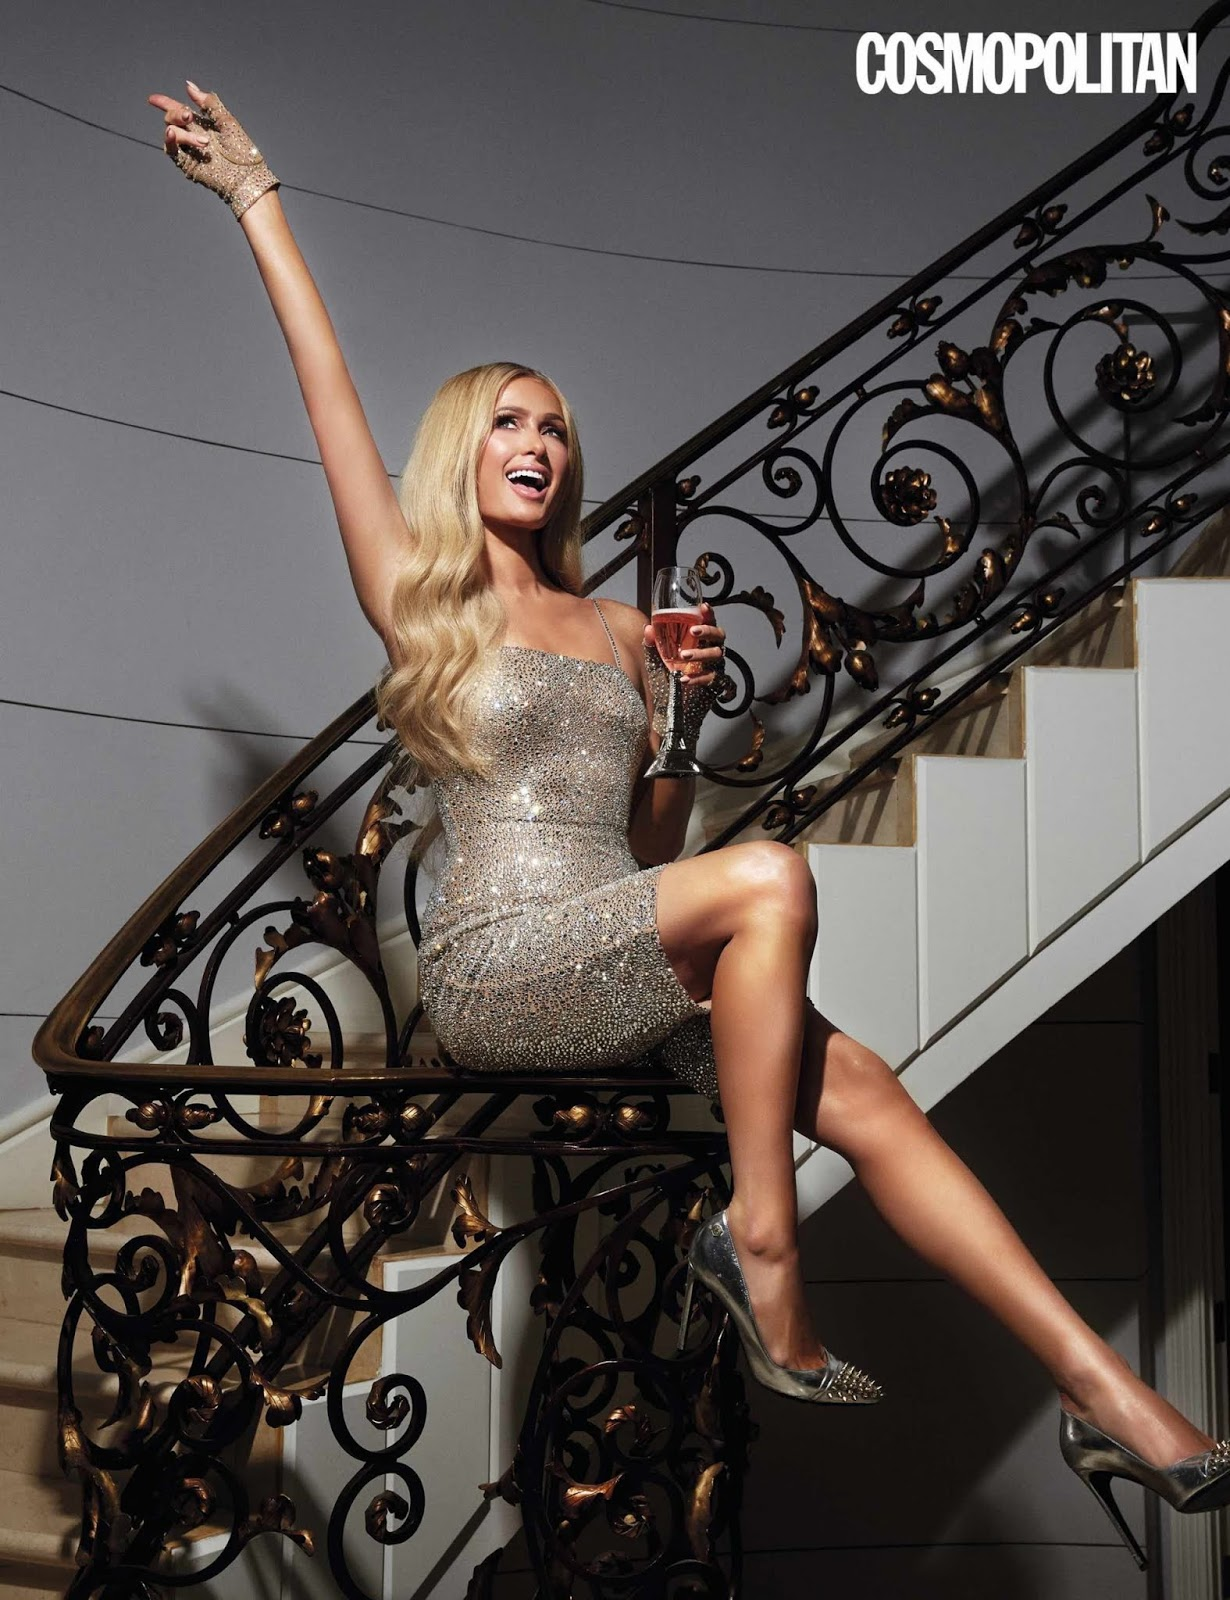 Paris Hilton – Cosmopolitan Magazine UK by Bernardo Doral April 2020